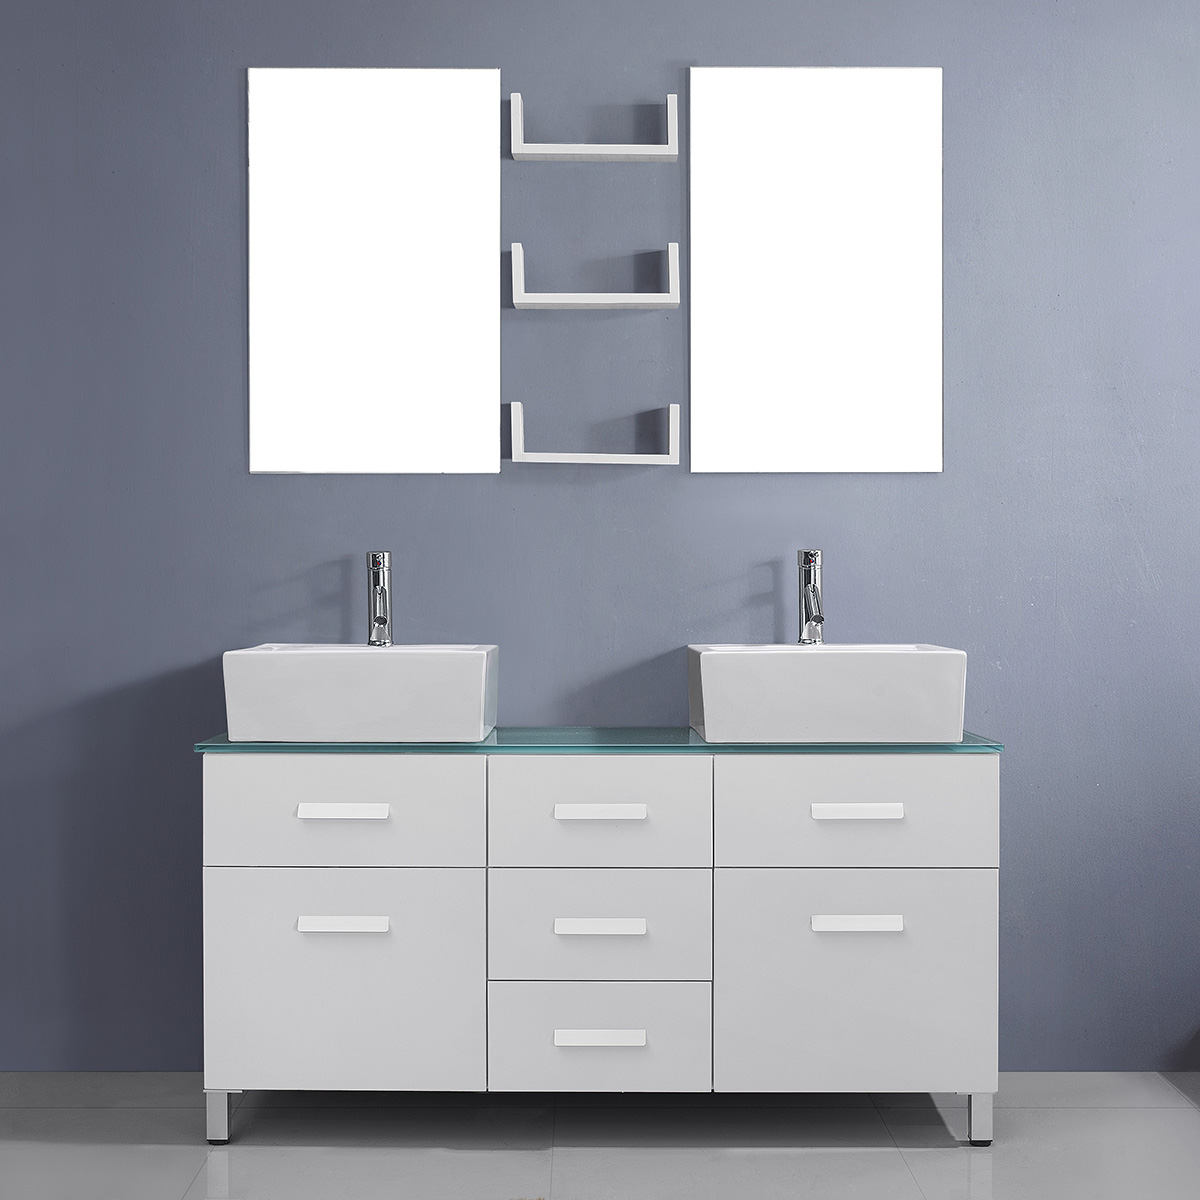 Virtu USA - UM-3063-G-WH-001 Maybell 56 inch Double Square Sink Glass Top Vanity in White with Brushed Nickel Faucet and Mirrors